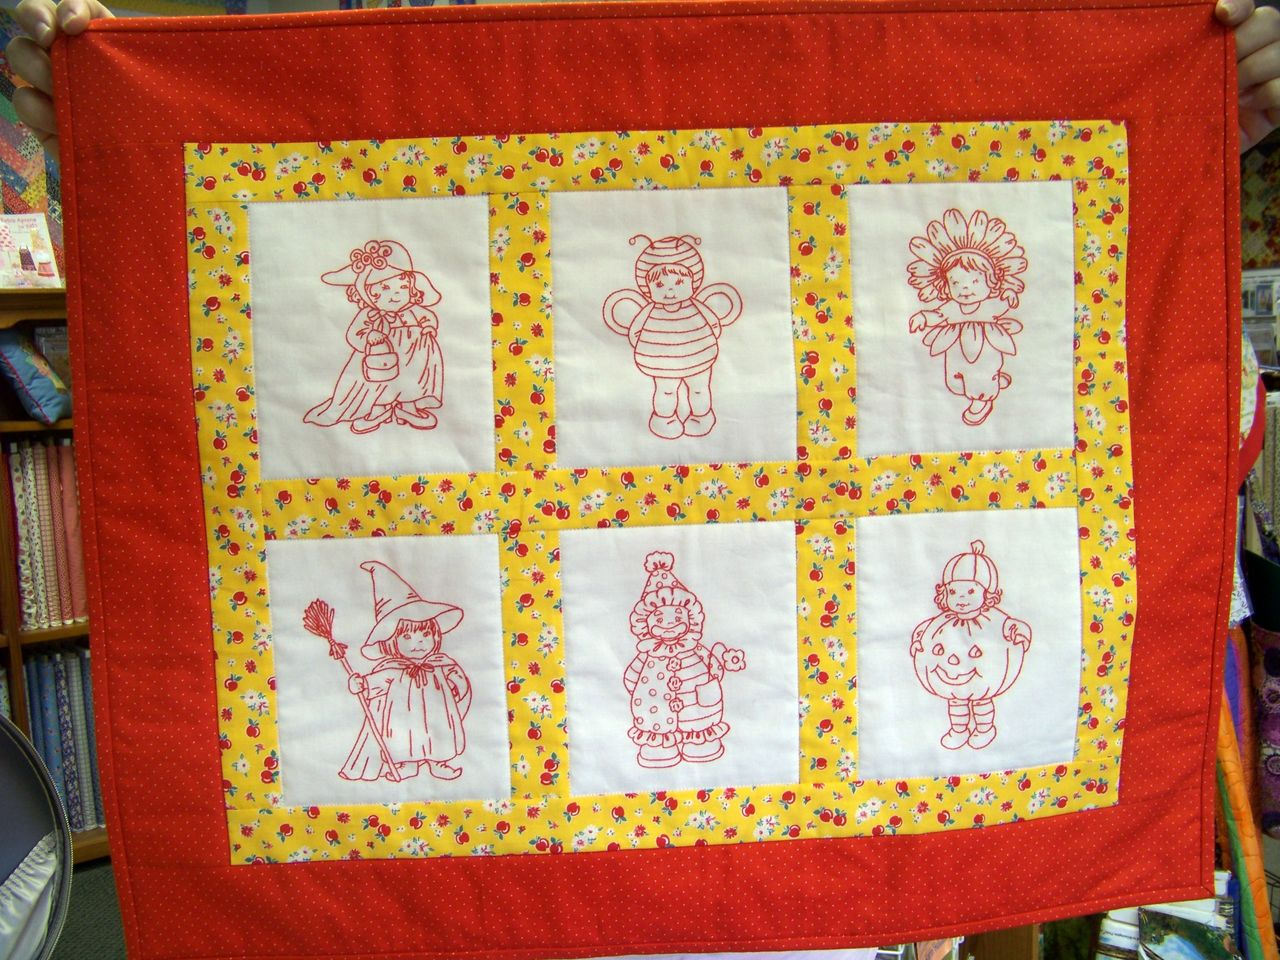 Attic Window Quilt Shop: NEW AT THE ATTIC WINDOW QUILT SHOP